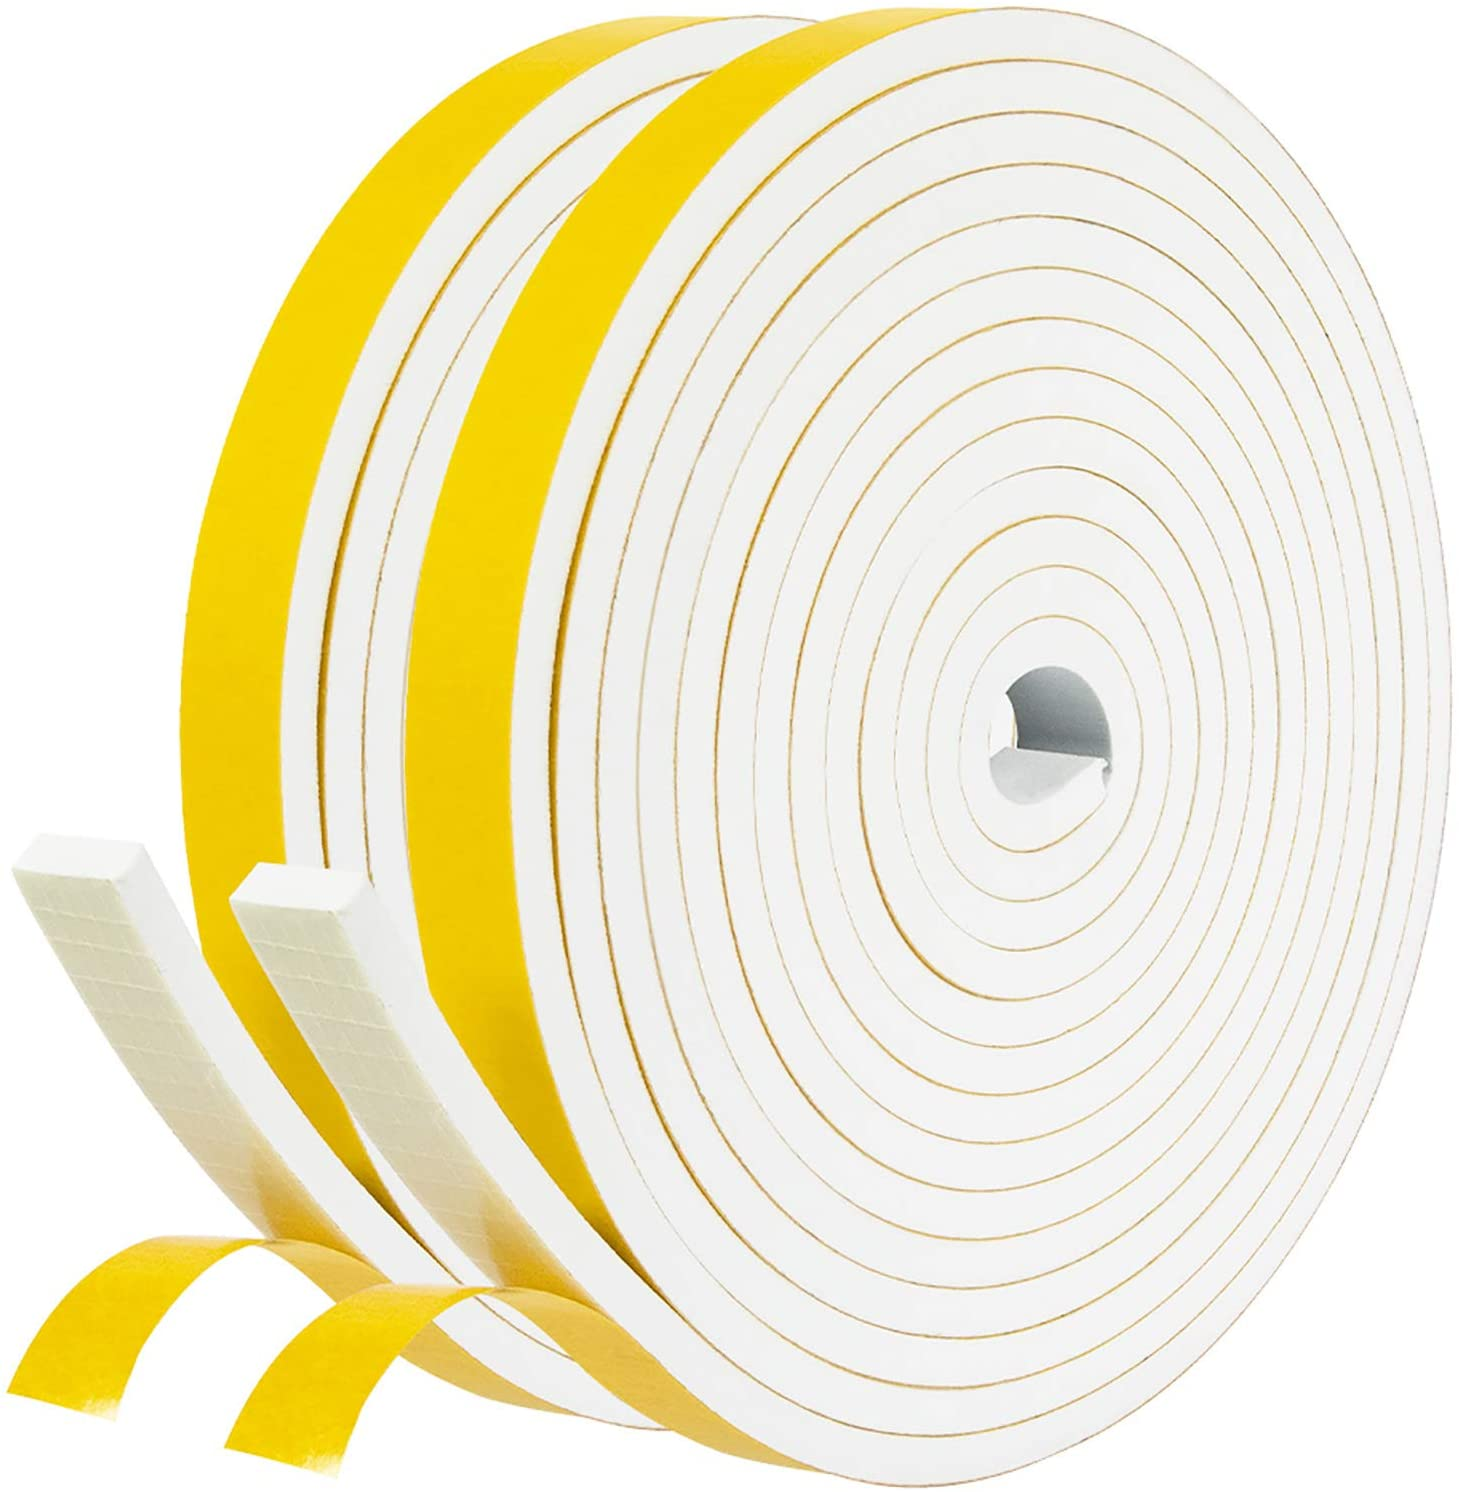 fowong White Door Weather Stripping 26 Feet, 1/2 Inch Wide X 1/4 Inch Thick, High Density Foam Tape Roll Neoprene Rubber Adhesive Weatherstrip Door Seal, Window Insulation, 2 Rolls X 13 Ft Each